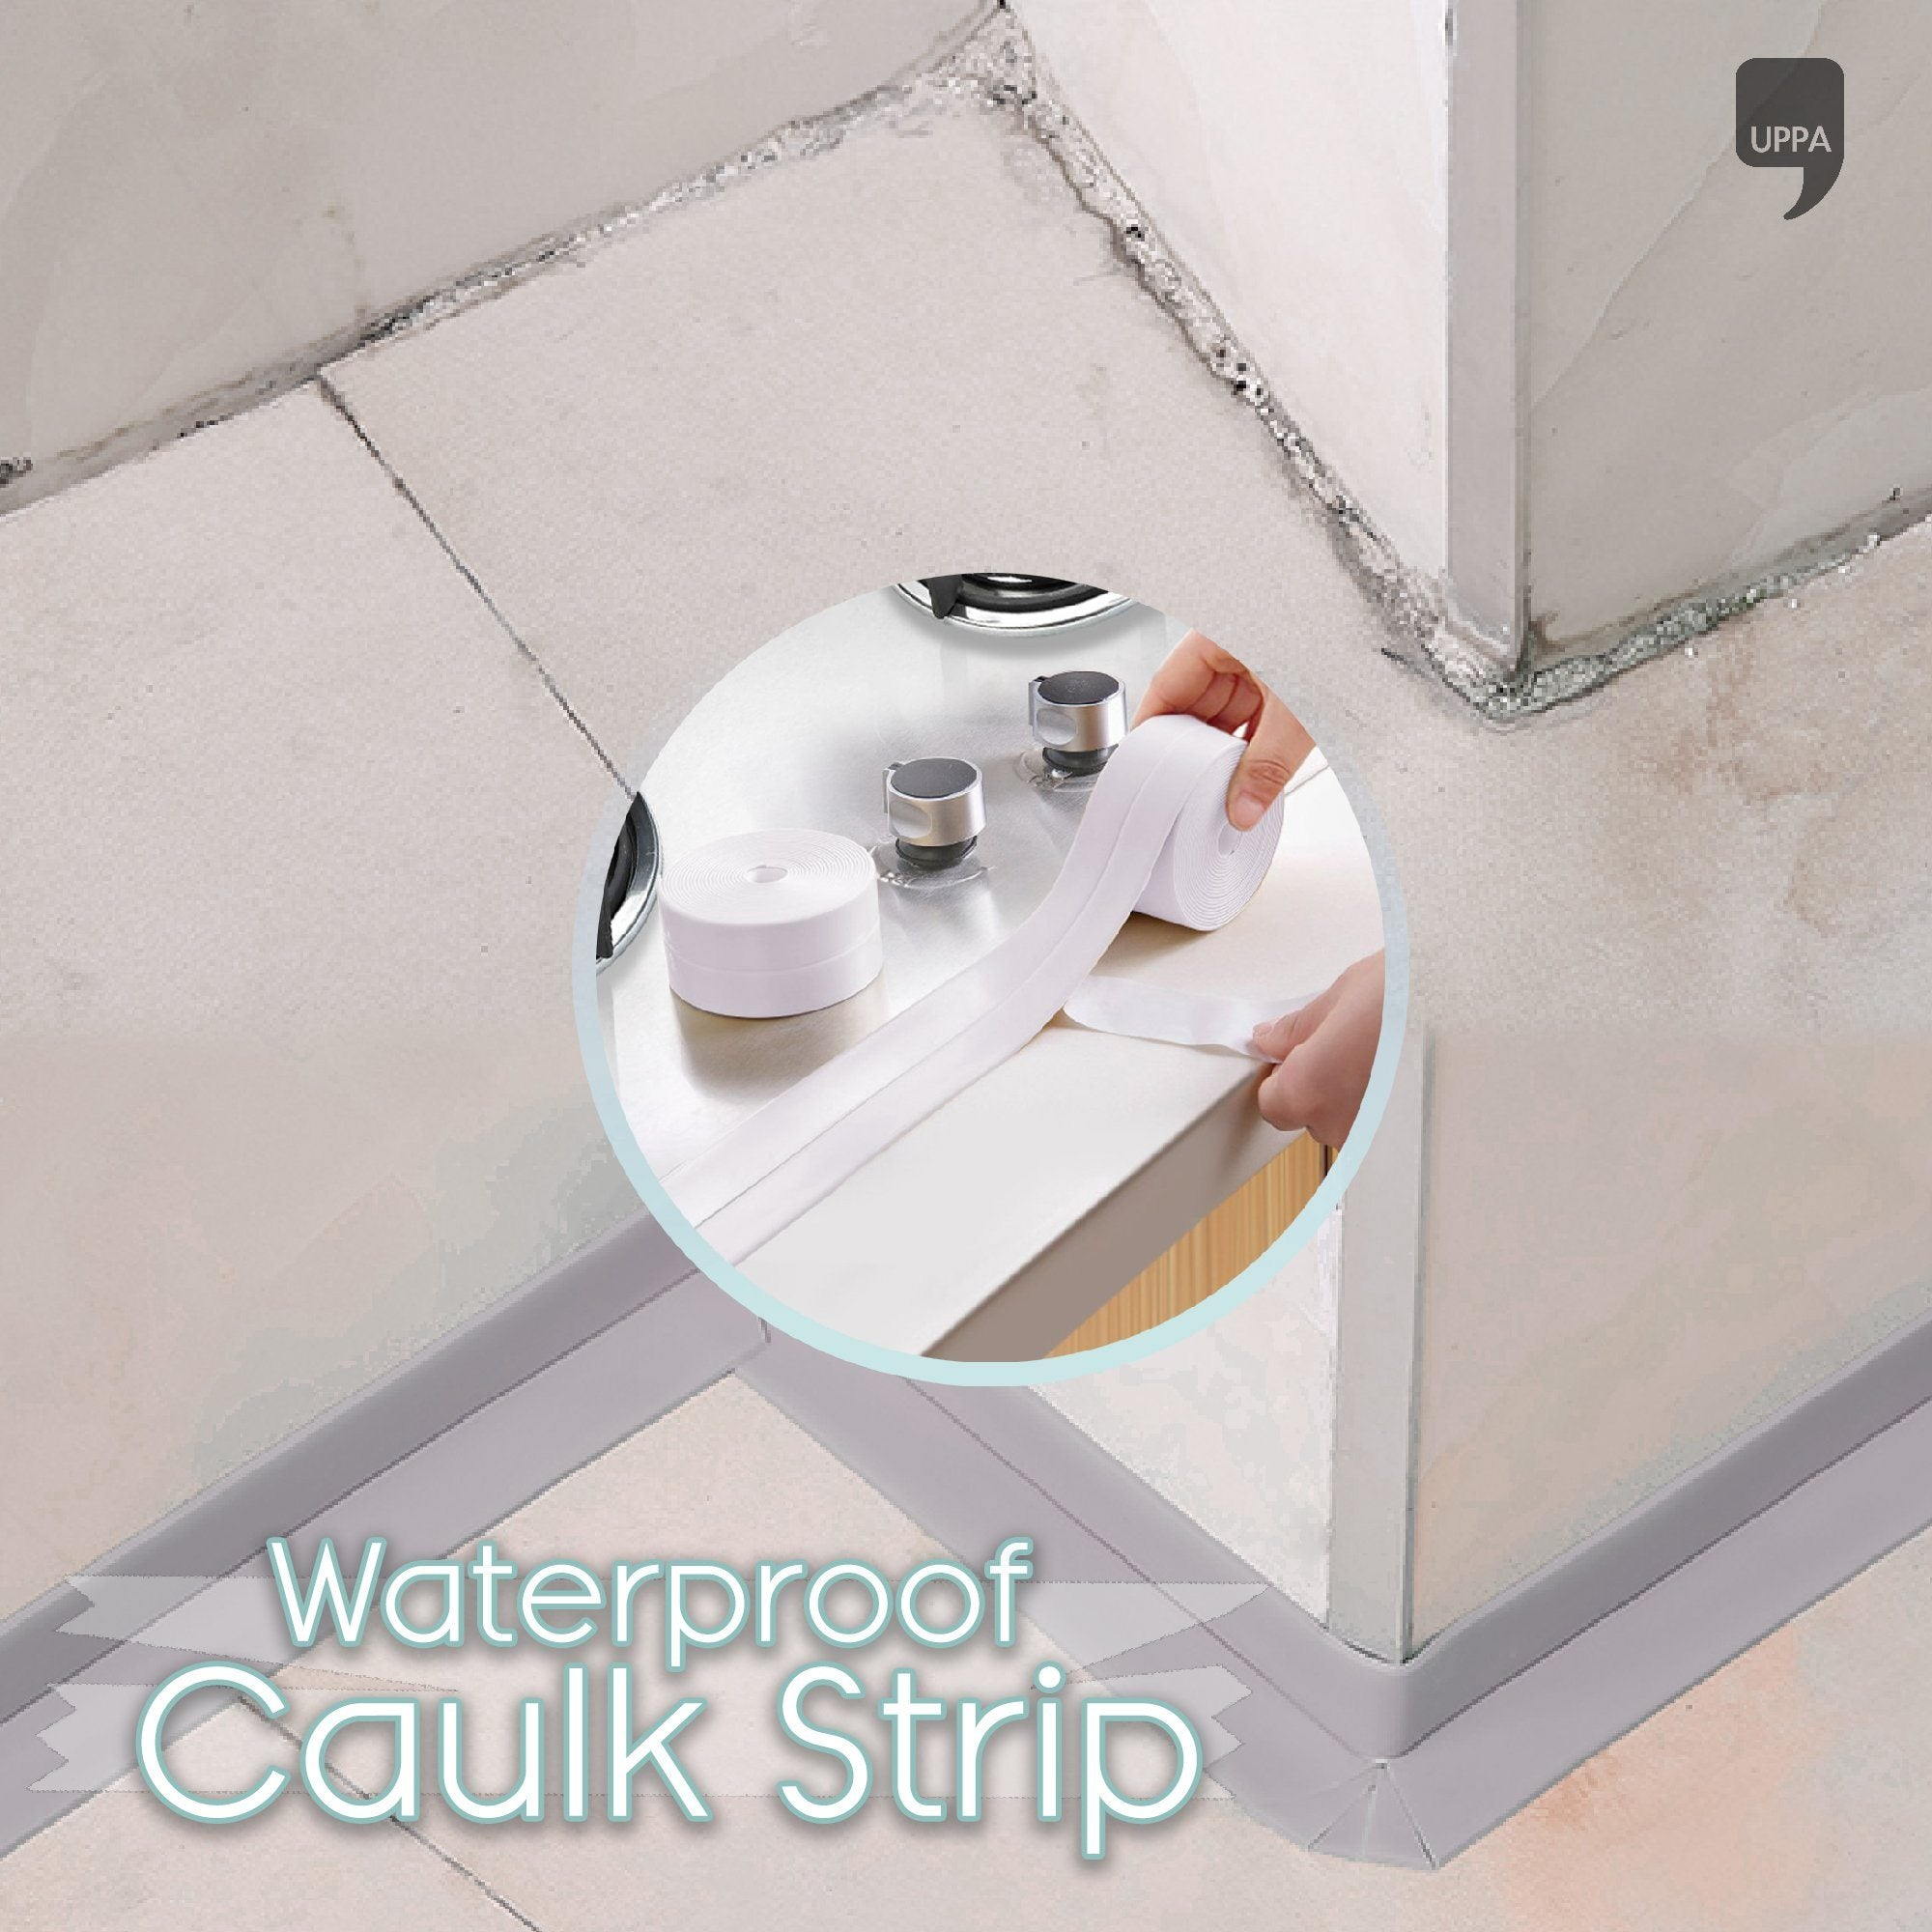 Waterproof Caulk Strip